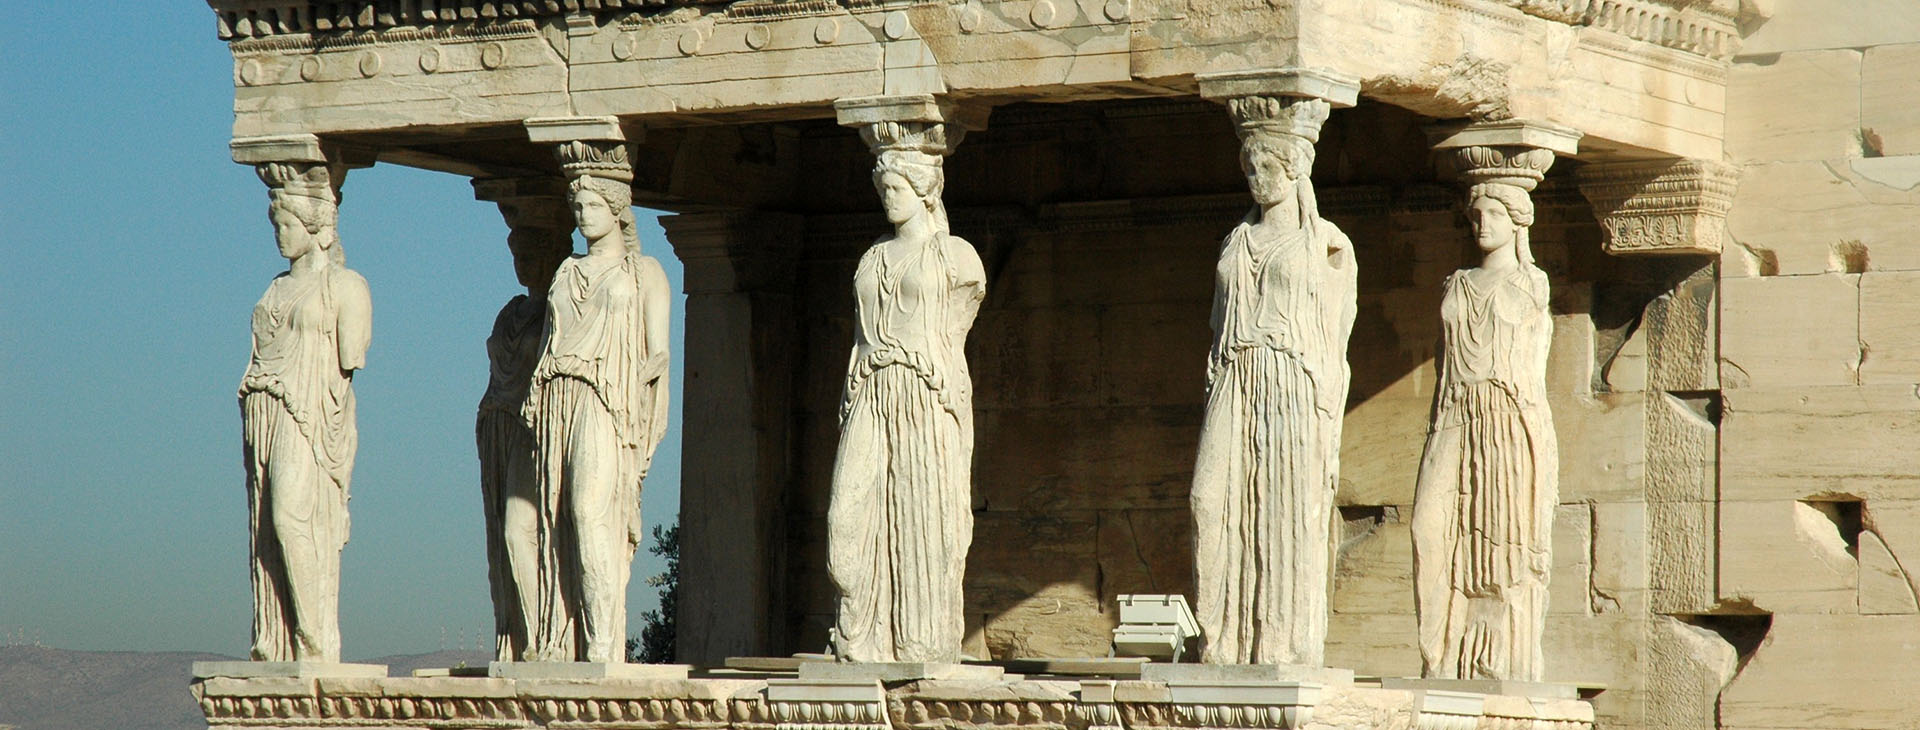 The Caryatids Statues / Erechtheion at Acropolis of Athens